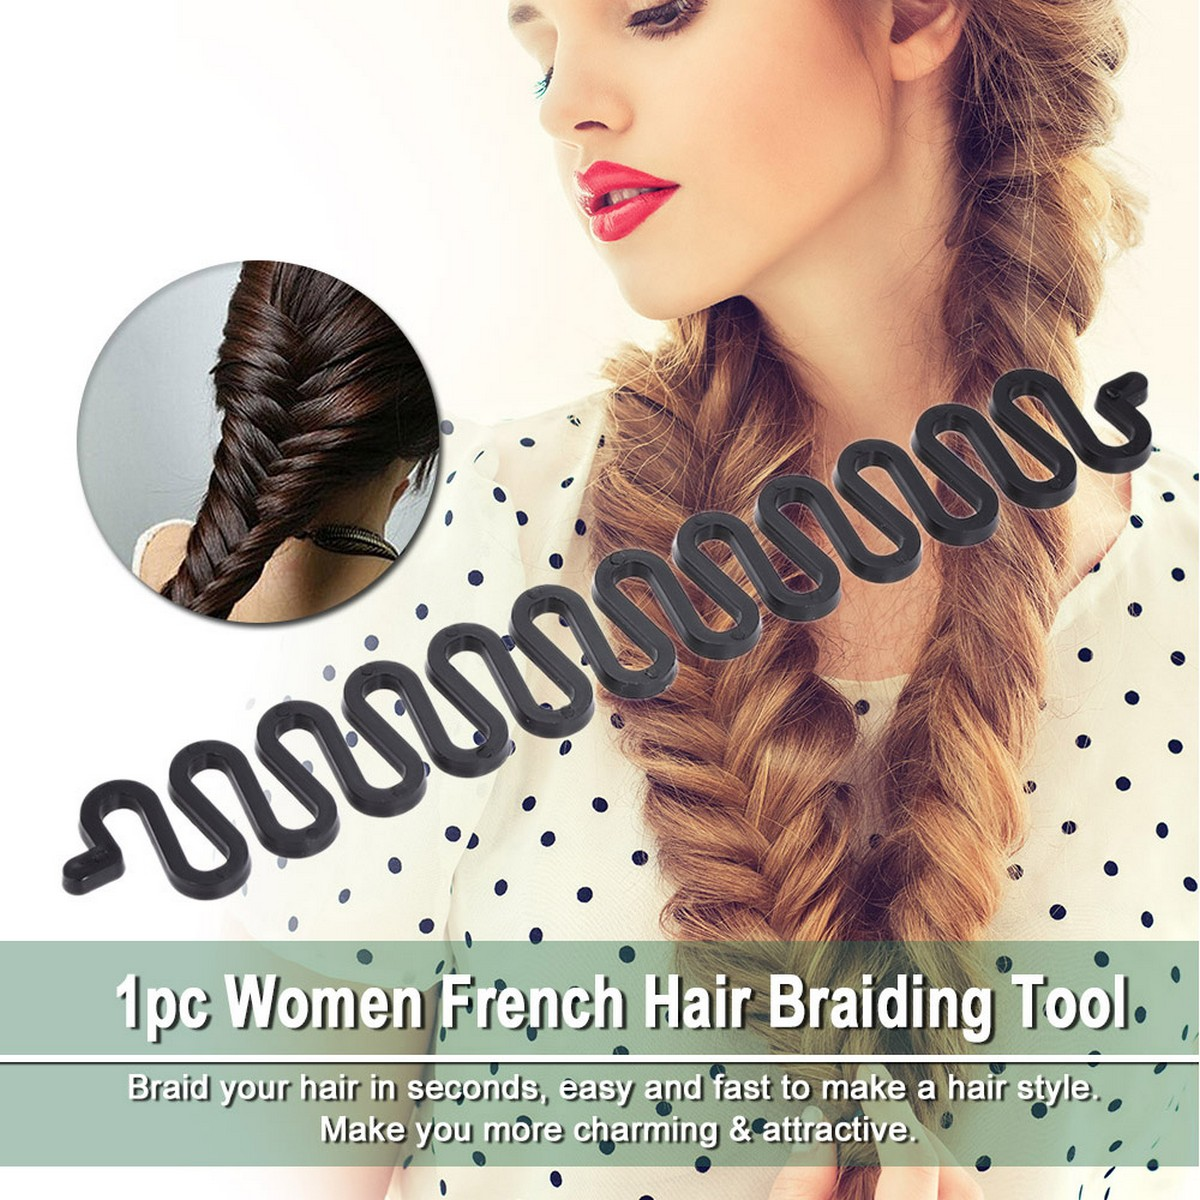 Black French Hair Braiding Tool For Women - Bridal Flower Hair Comb Clip for woman Jewelry New Fashion Women Set Topsy Tail Hair Styler Hair Style Hair Twister Snare Loop Black Top Used With Extension Wig